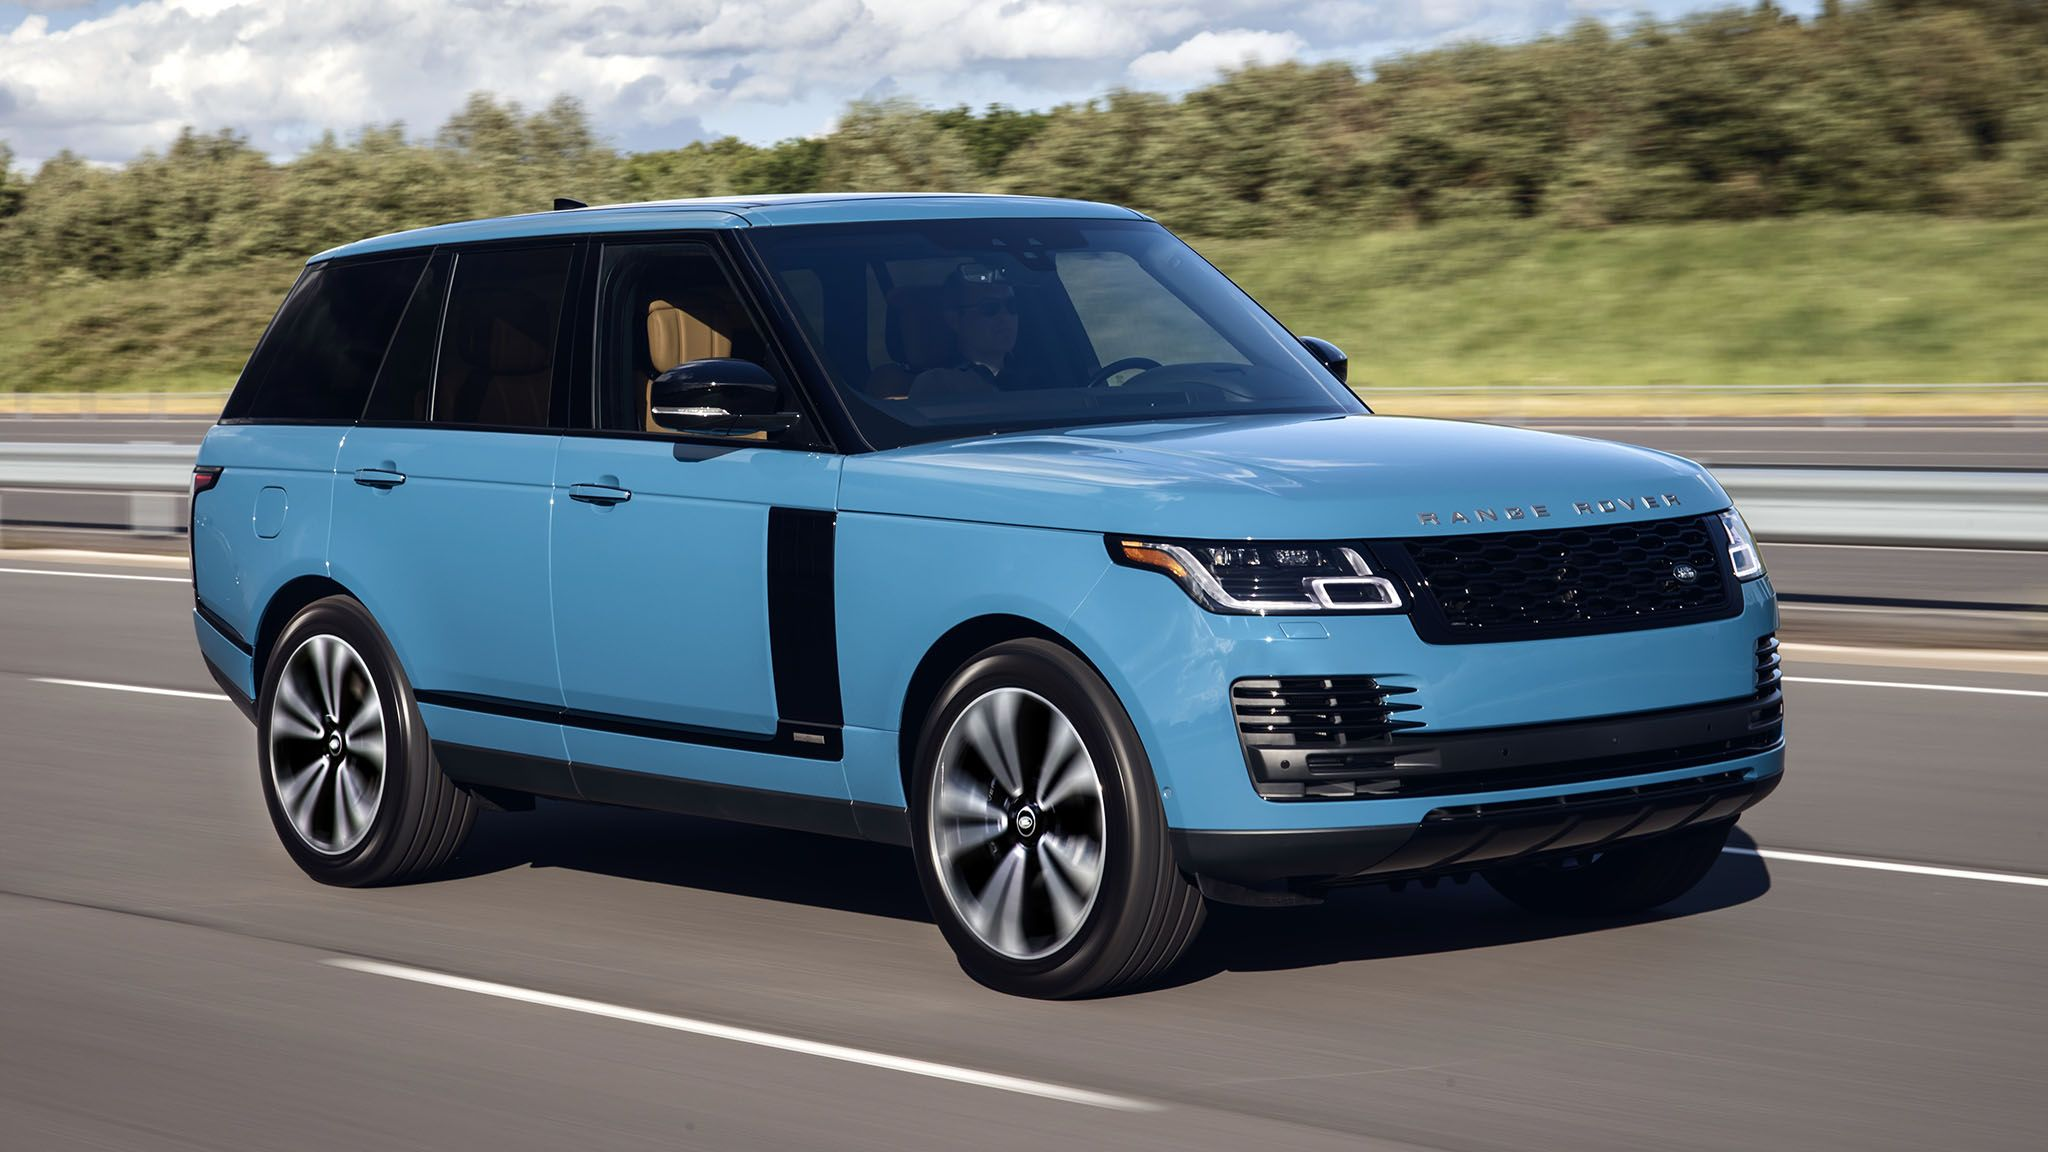 2021 Land Rover Range Rover Fifty Marks the SUV's 50th